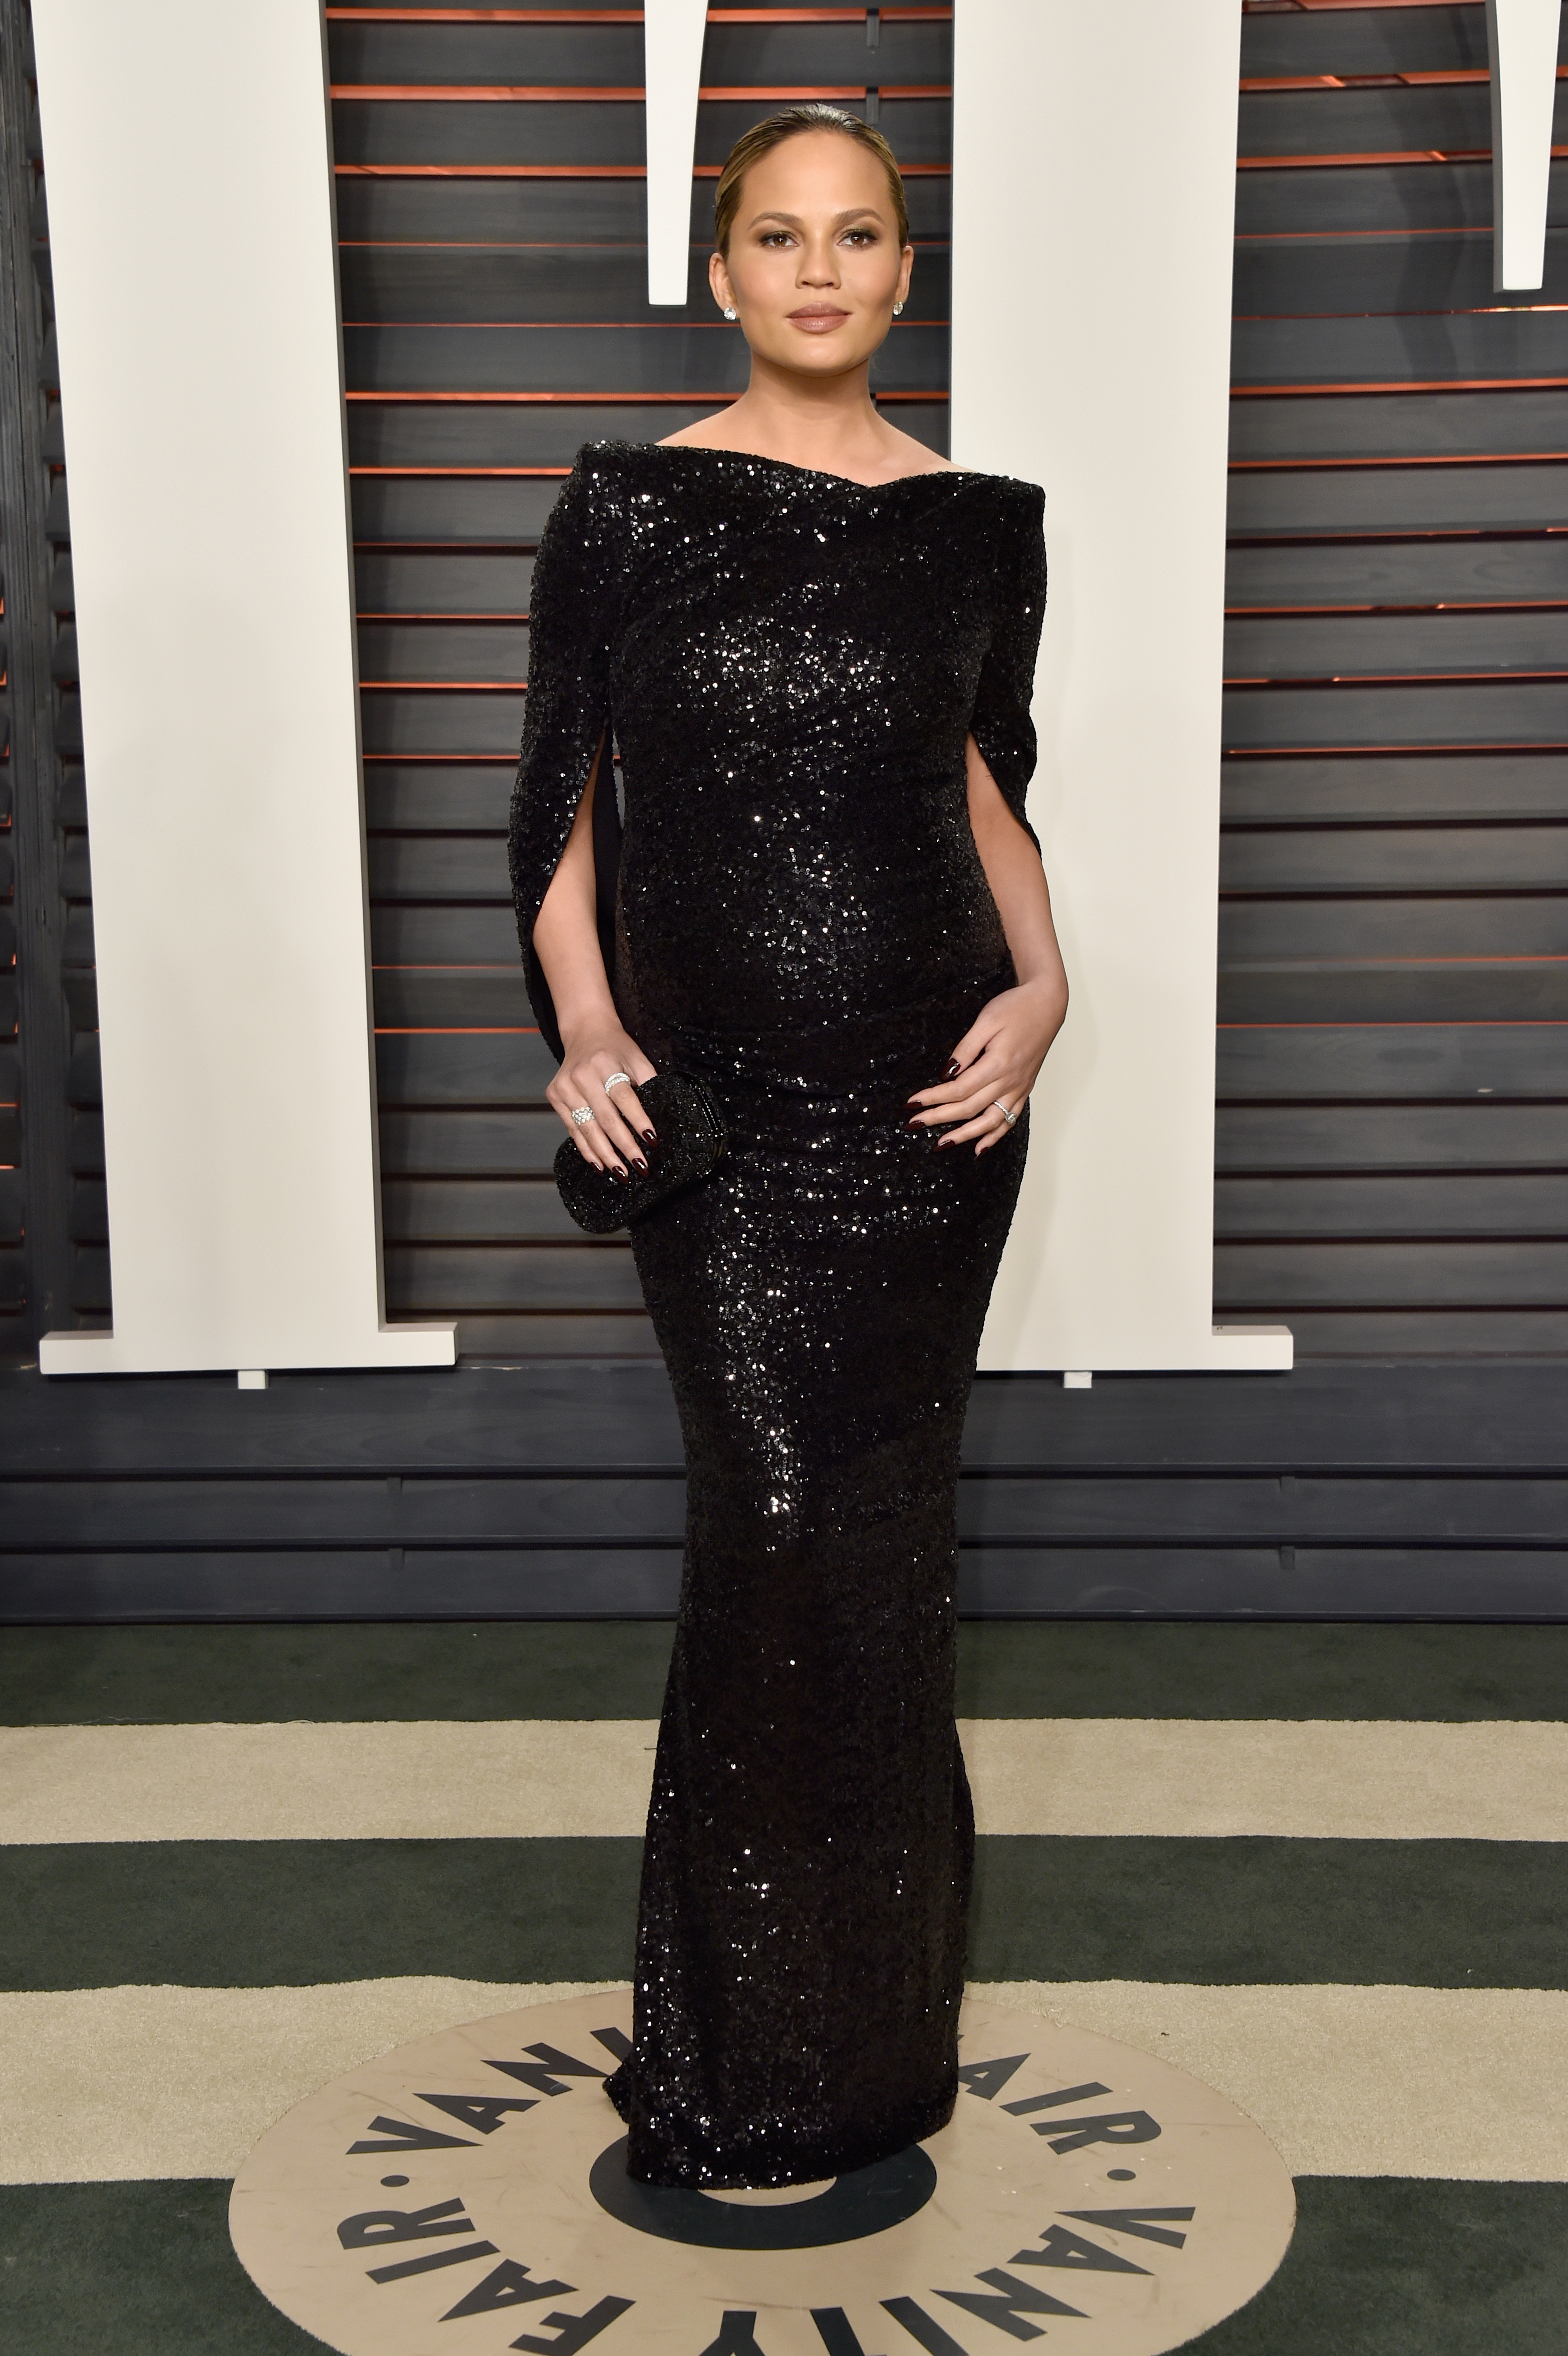 attends the 2016 Vanity Fair Oscar Party Hosted By Graydon Carter at the Wallis Annenberg Center for the Performing Arts on February 28, 2016 in Beverly Hills, California.